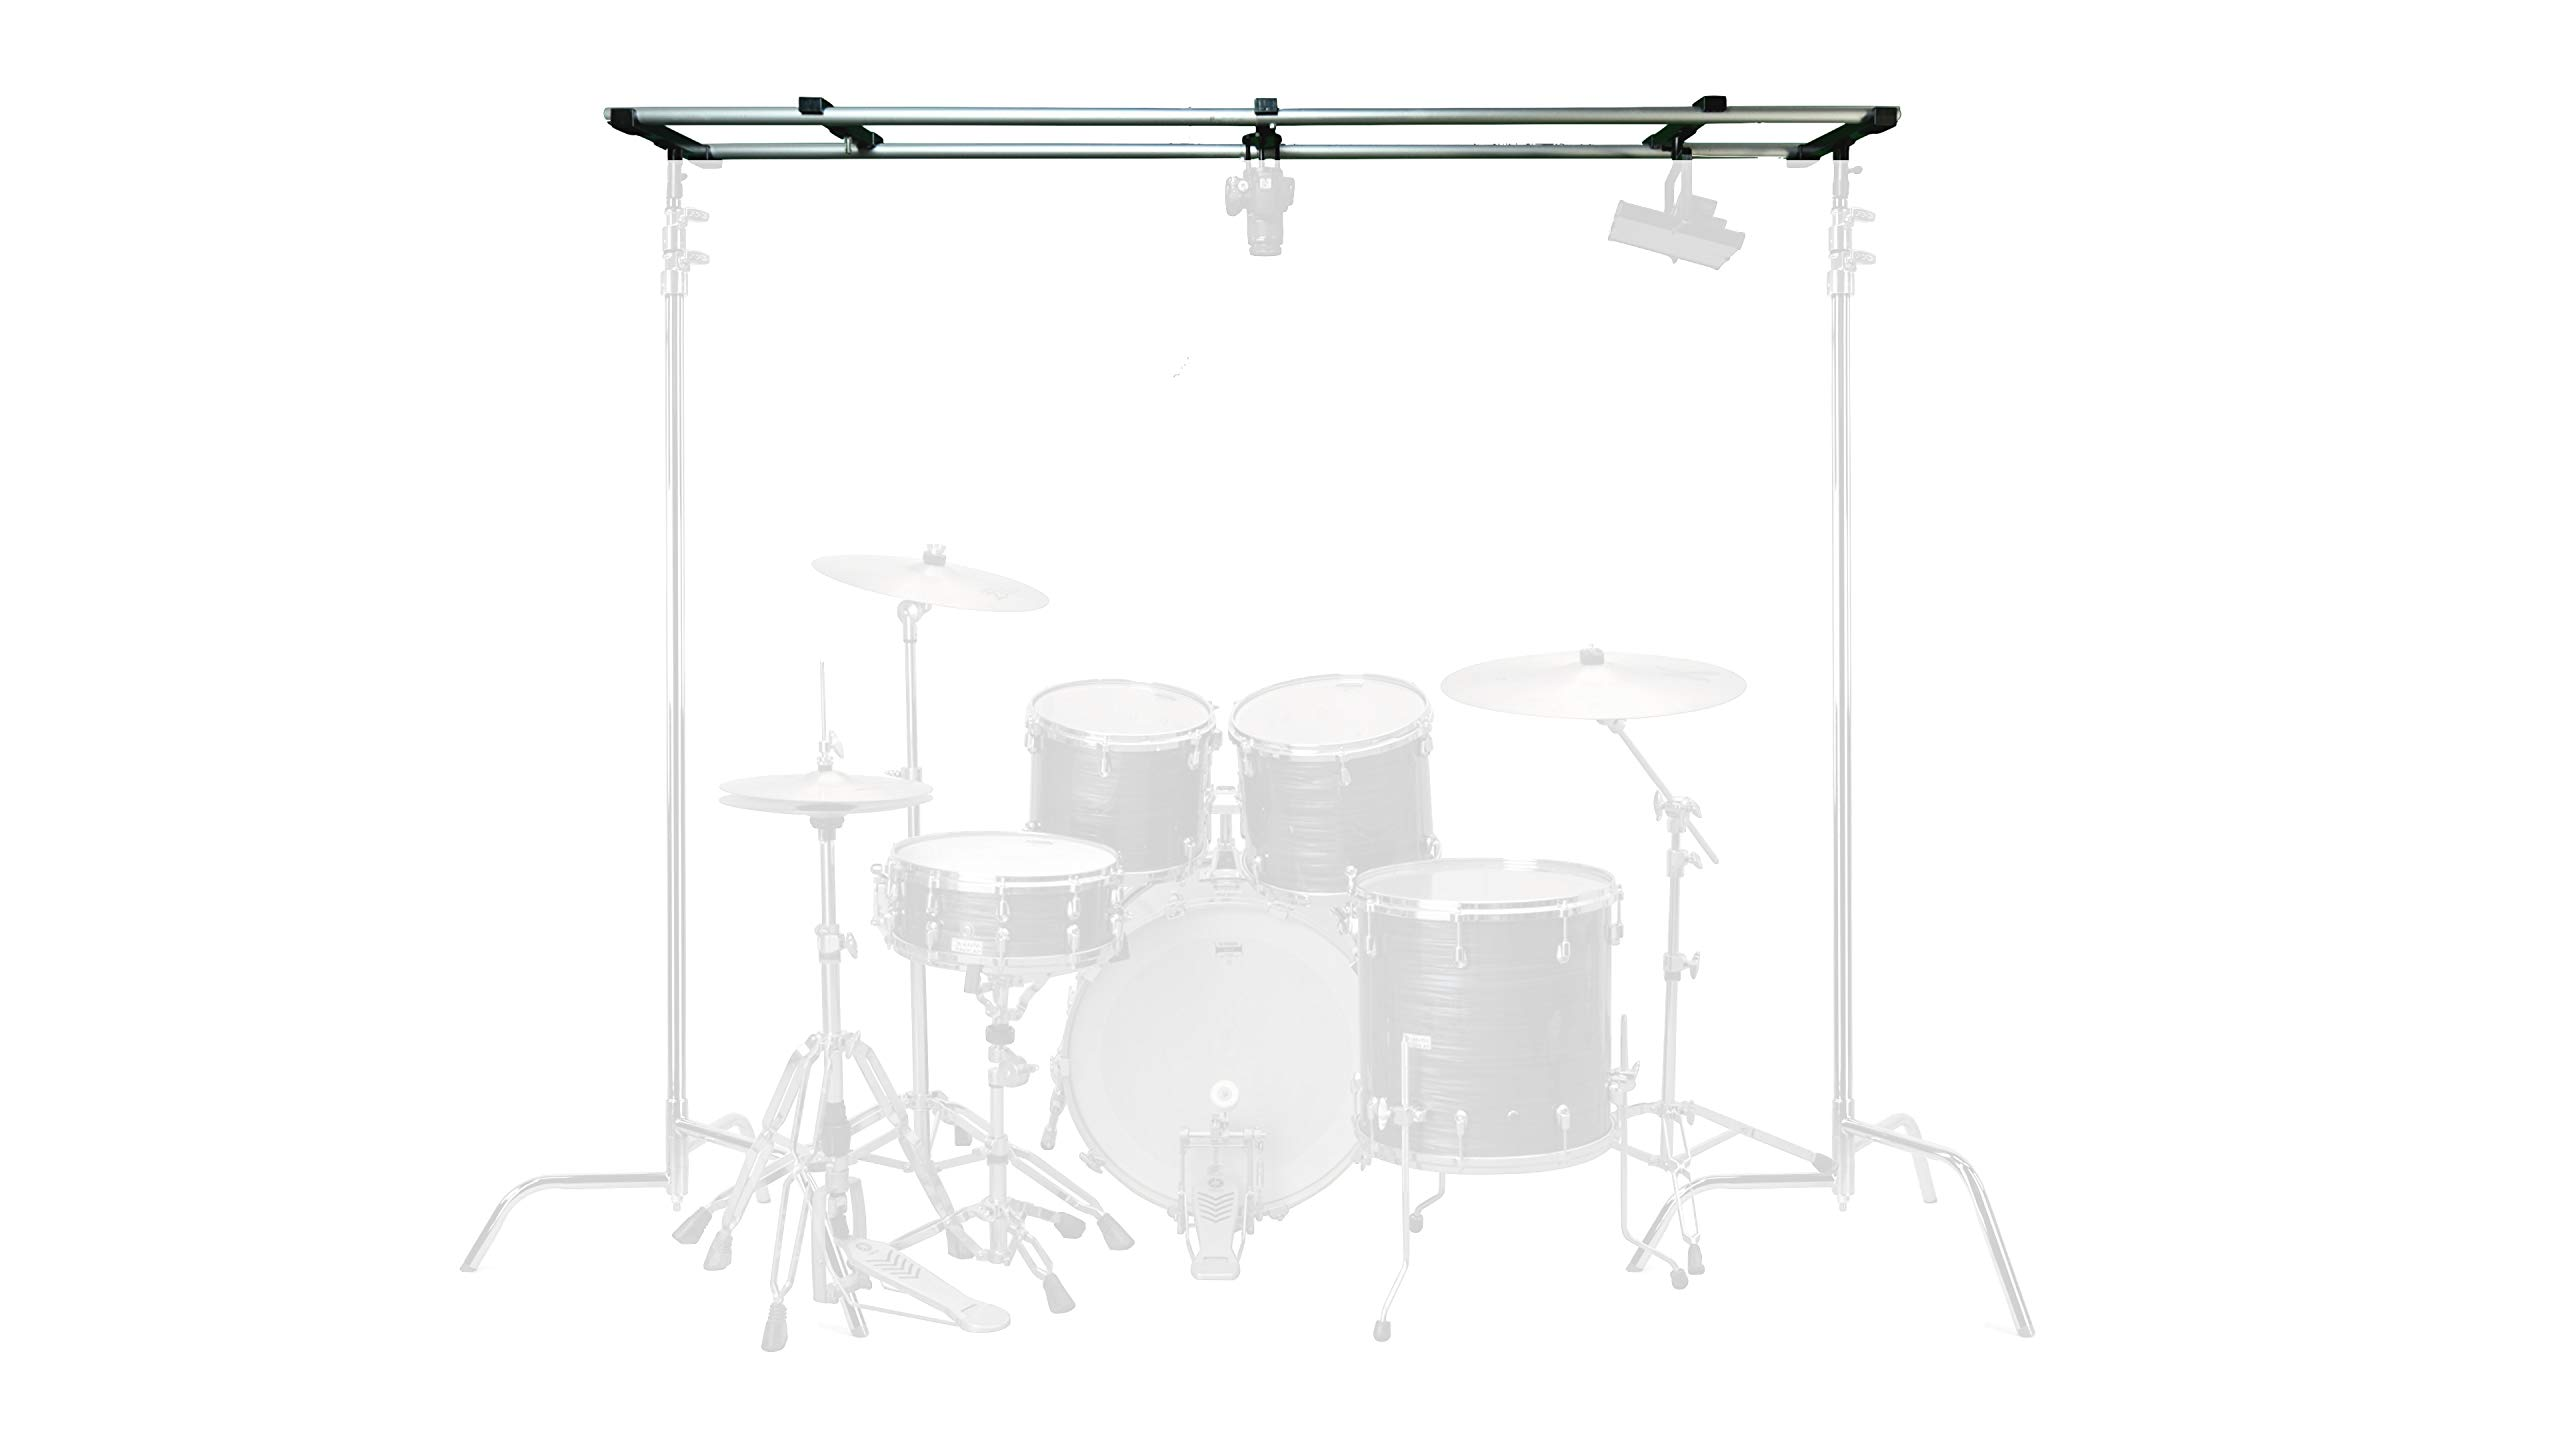 Glide Gear OH 150 Overhead Camera Light Platform Rig Stand 4-12ft Wide Modular System by Glide Gear